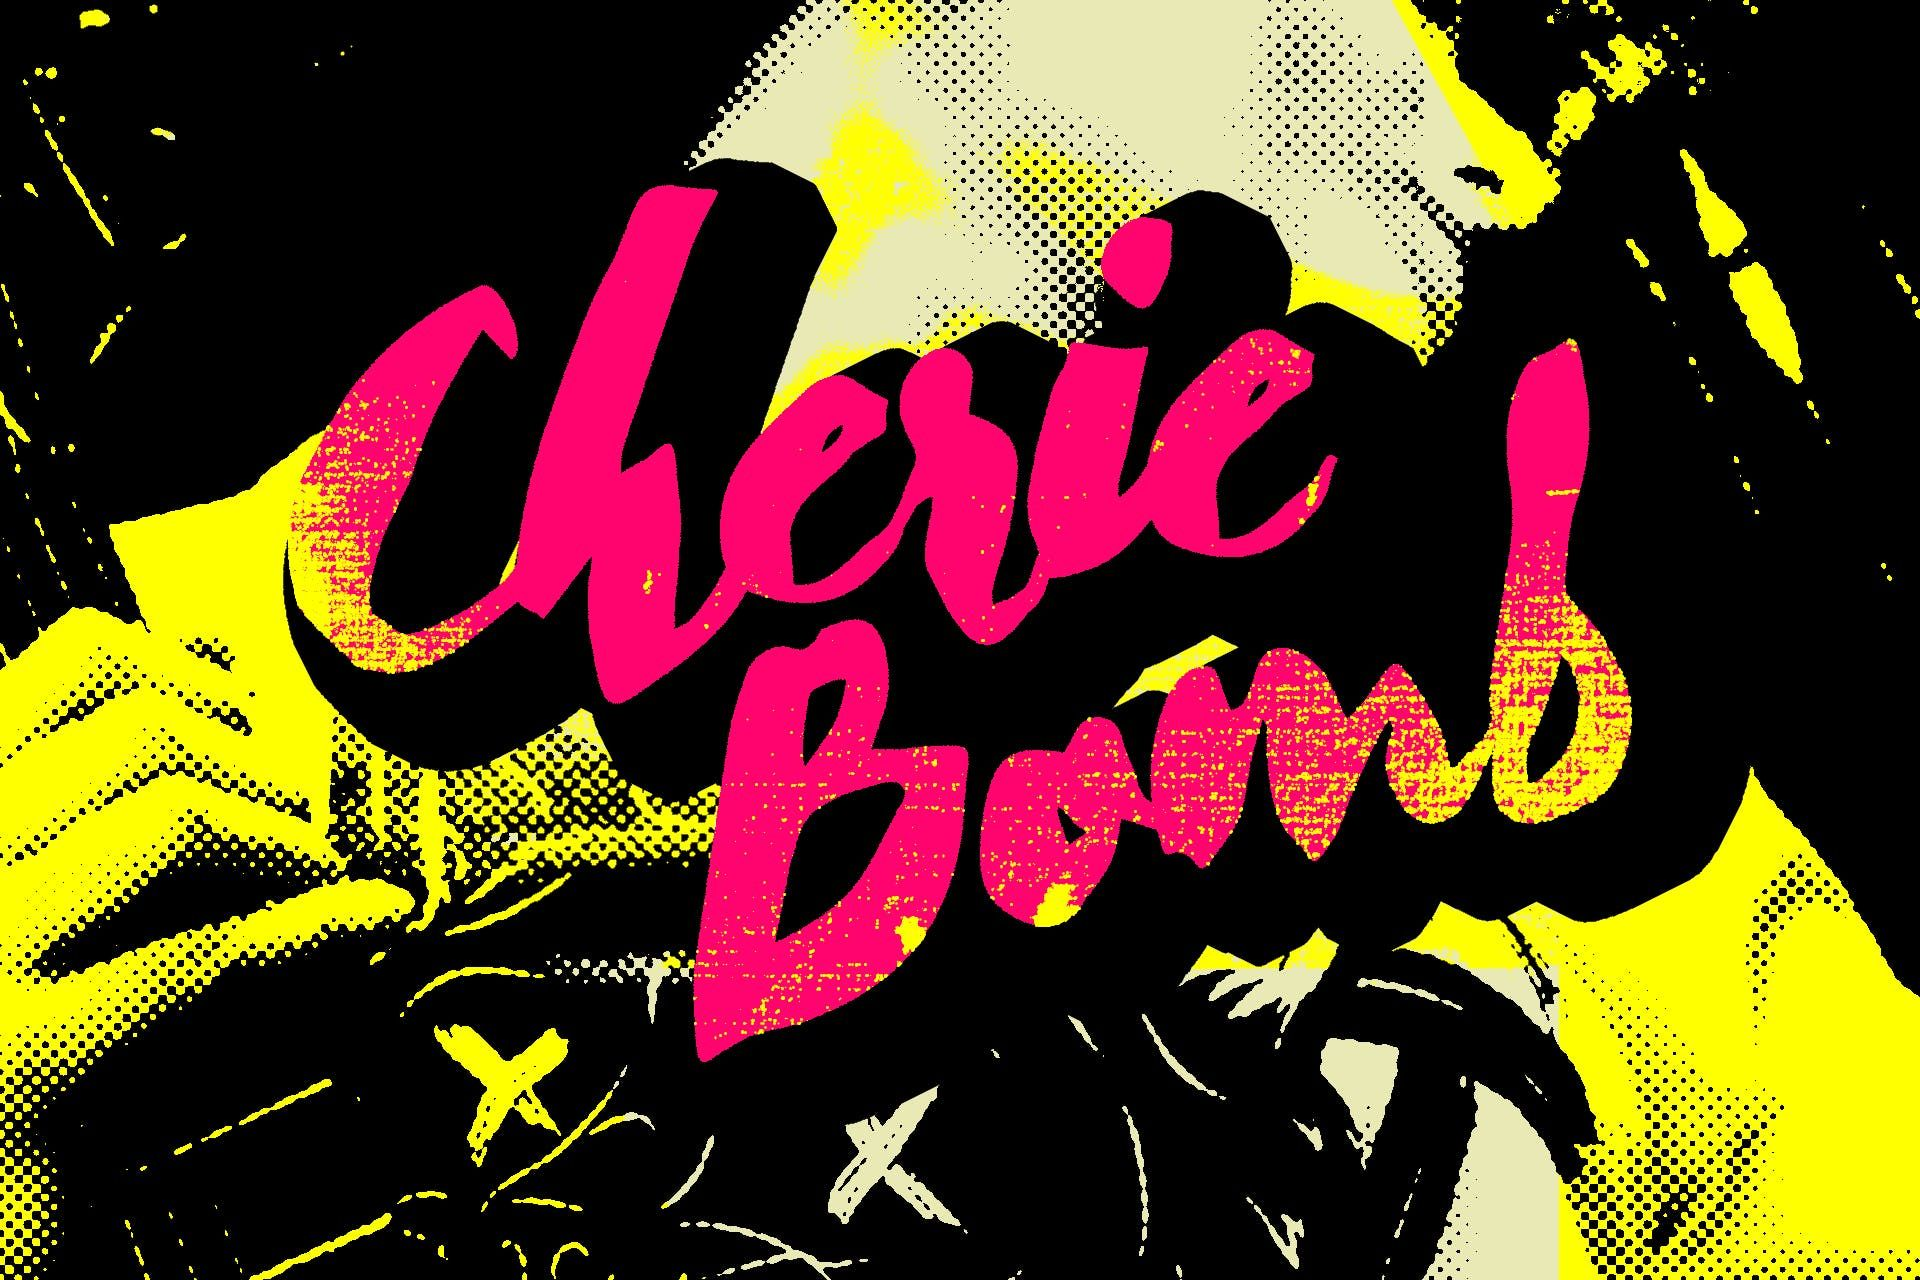 Download Cherie Bomb Fonts by dafeld. Subscribe to Envato